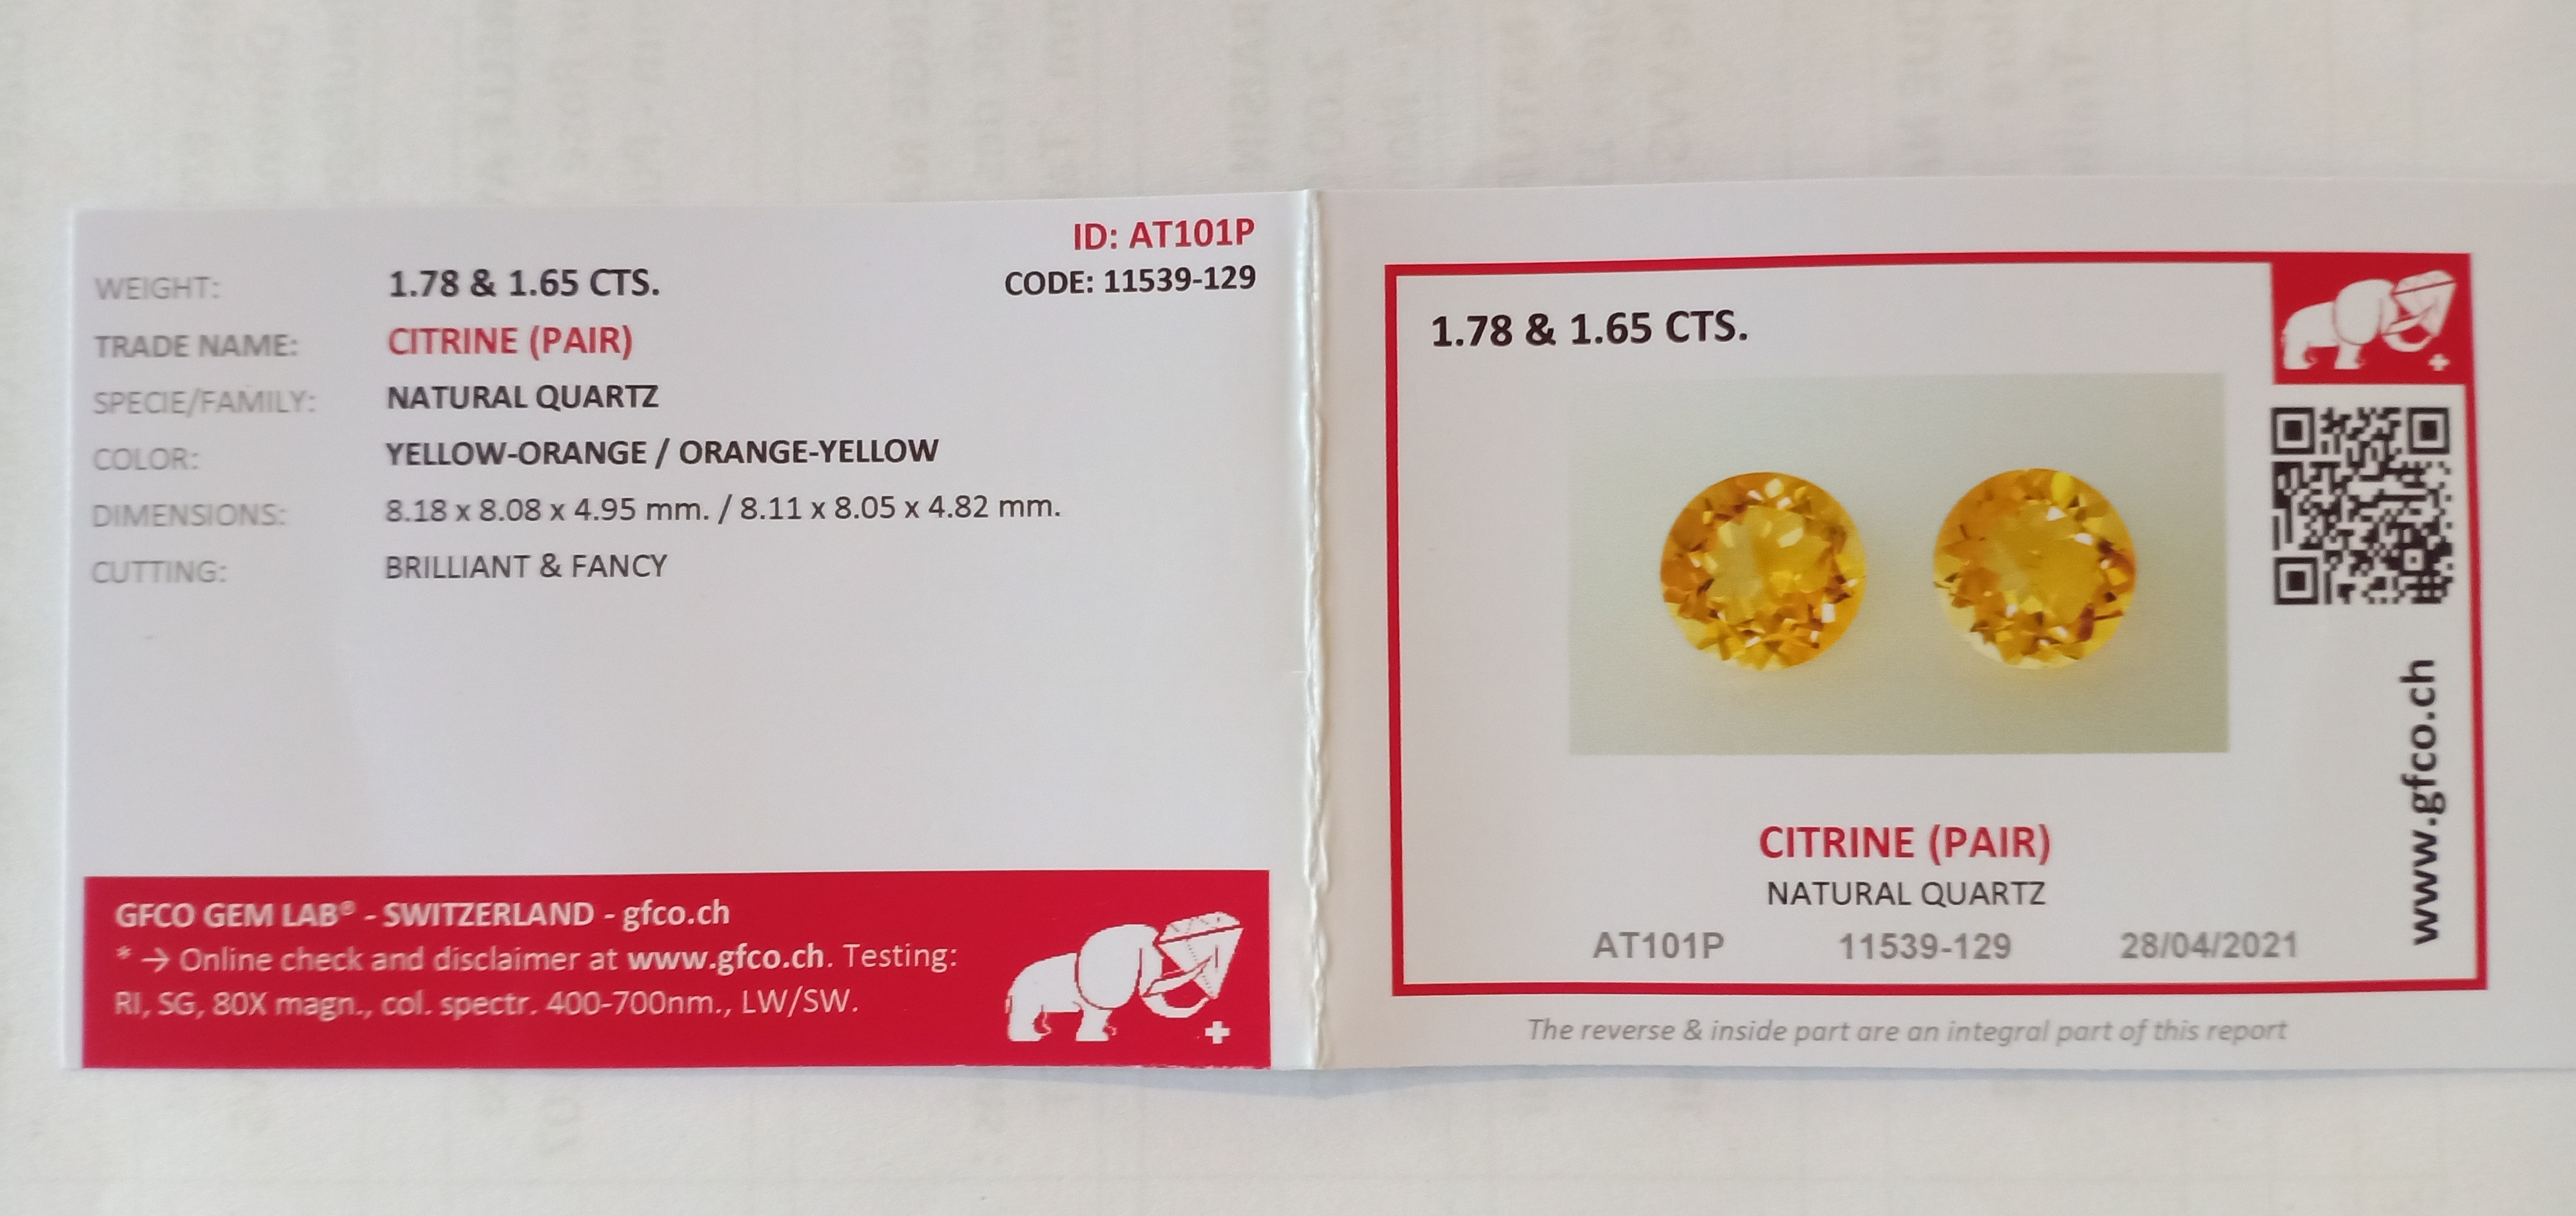 PAIR OF NATURAL CITRINES - BRAZIL - 3.43 Cts - Certificate GFCO Swiss Laboratory - Image 5 of 5